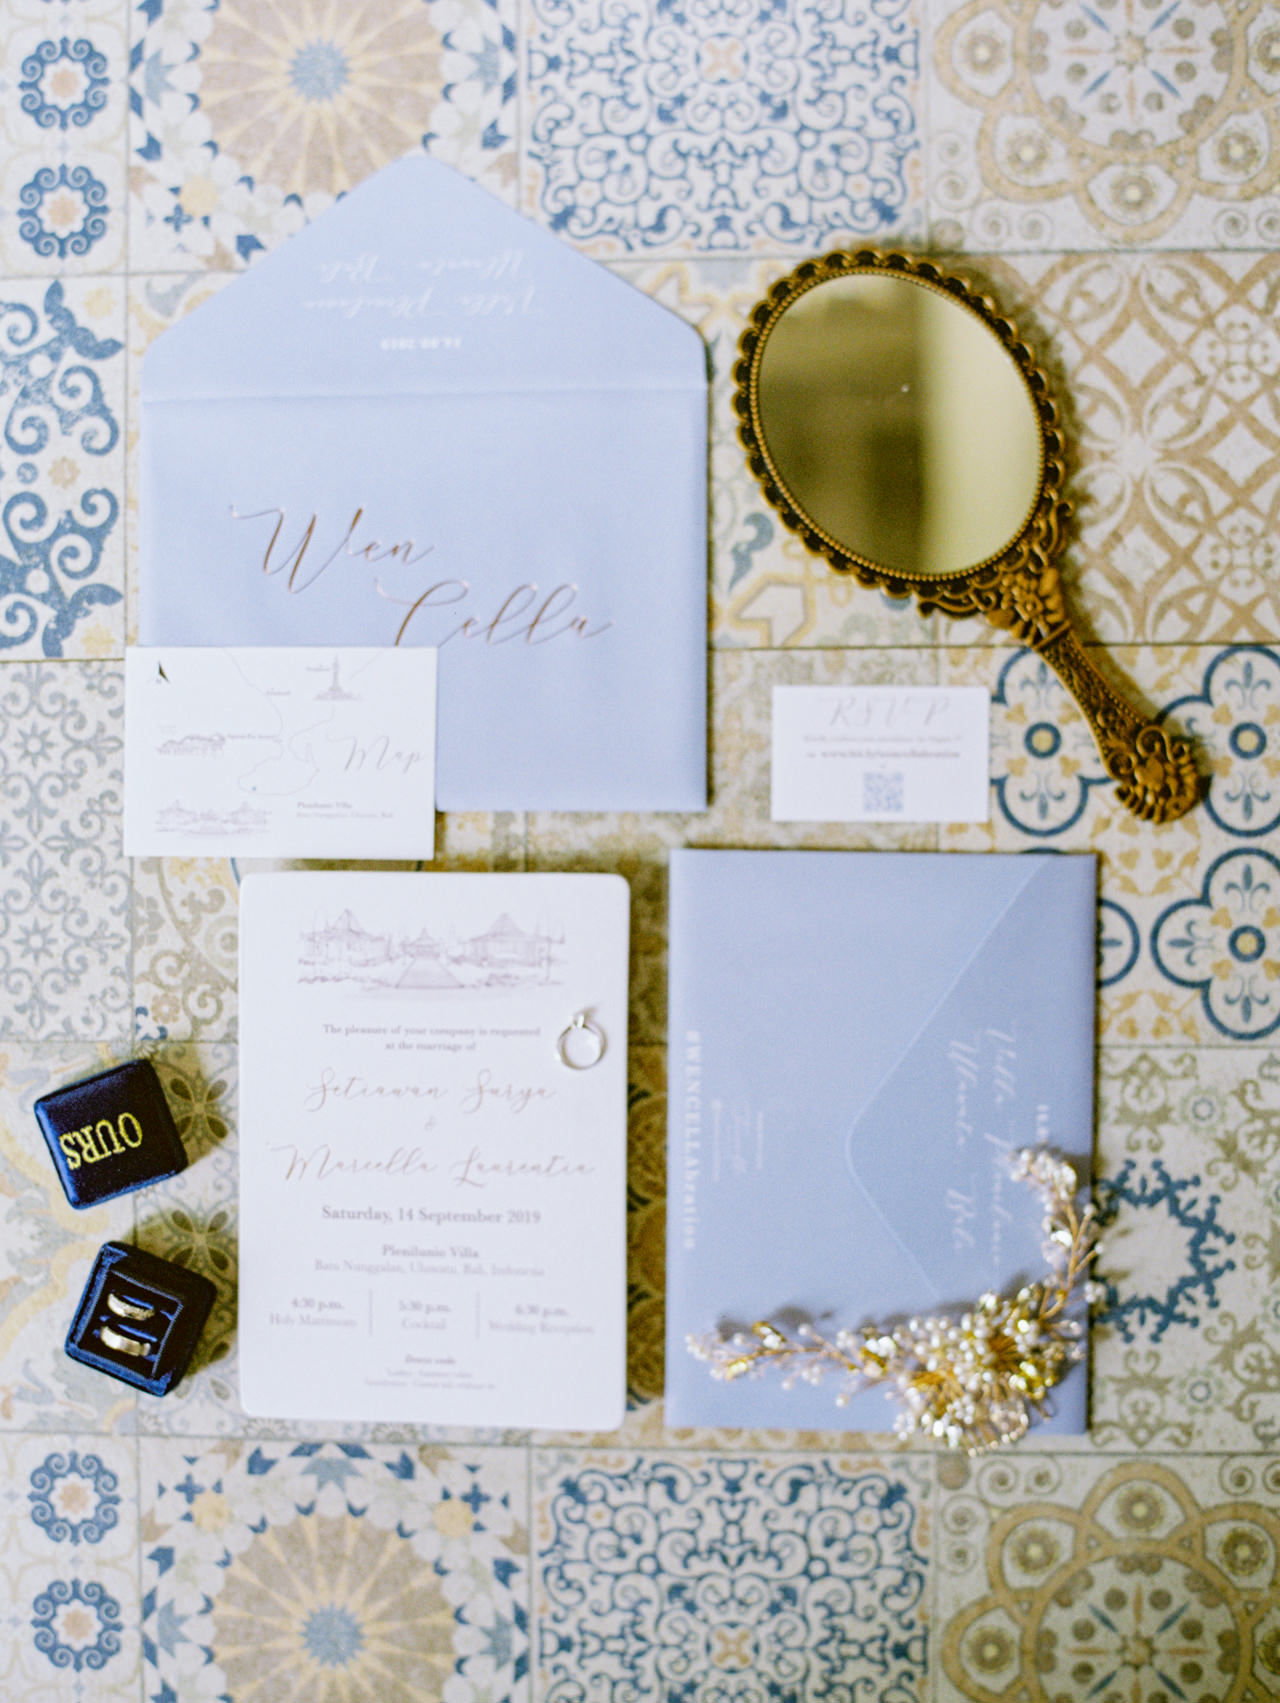 M&S: Shades of Blue Villa Plenilunio Bali Wedding 3